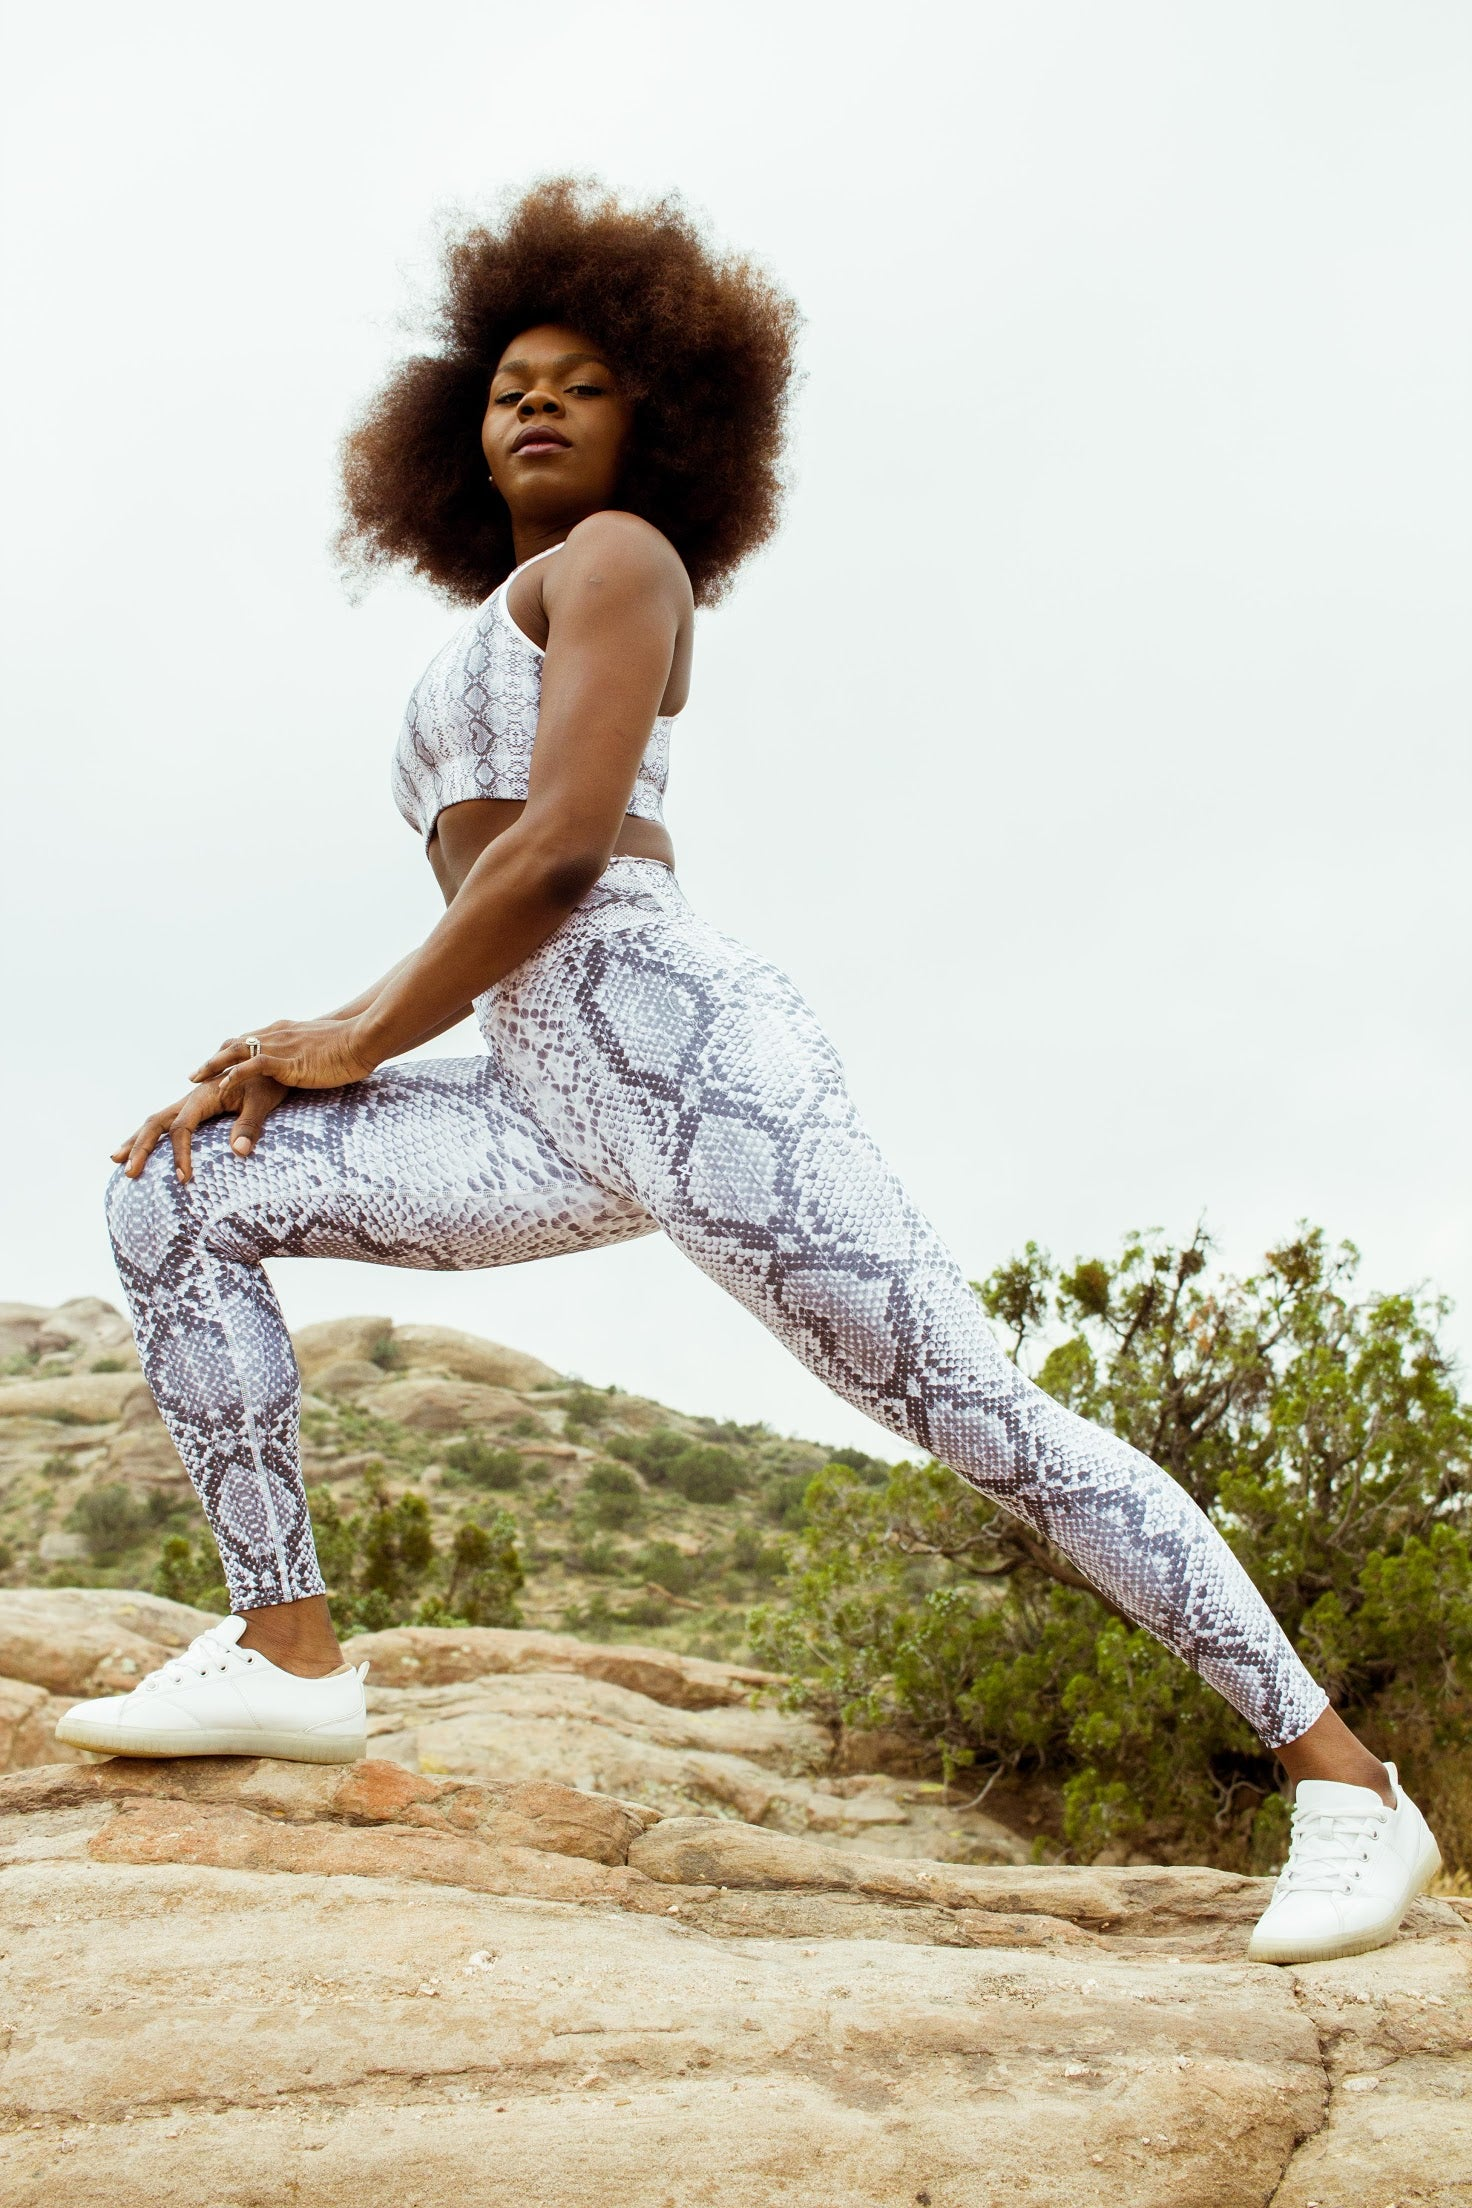 'Safi' Snake Skin Yoga Leggings